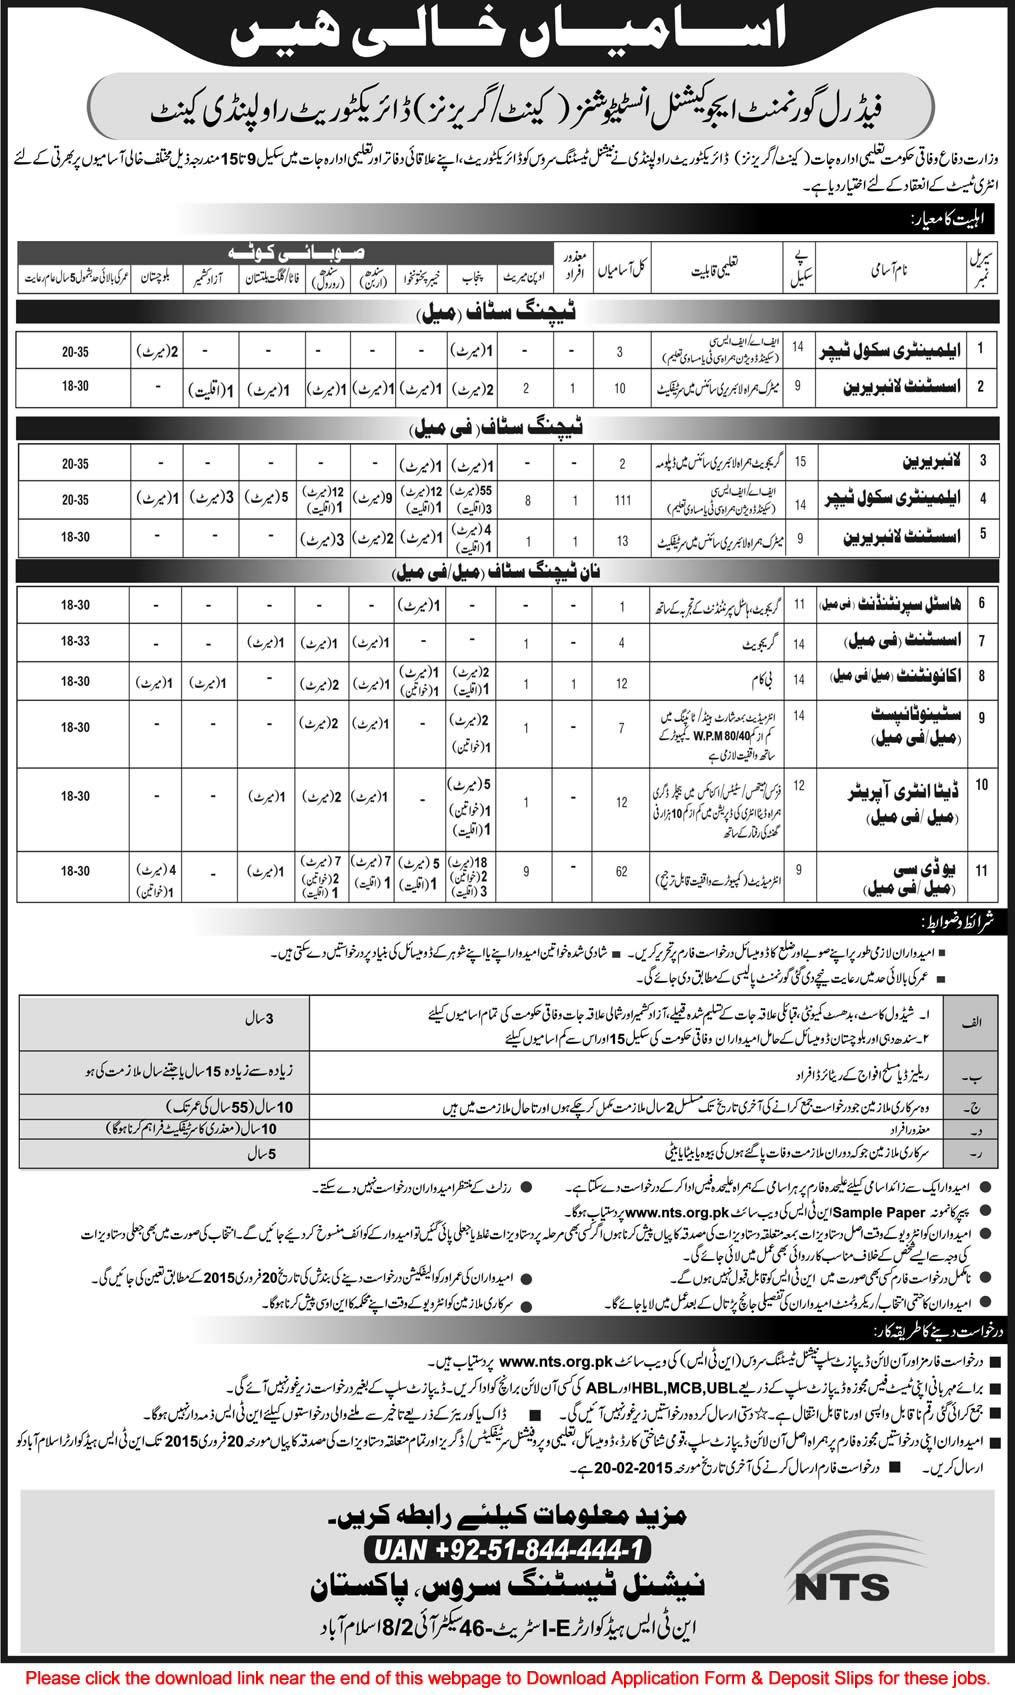 Federal government educational institutions canttgarrisons jobs federal government educational institutions canttgarrisons jobs 2015 fgei cg nts application form falaconquin